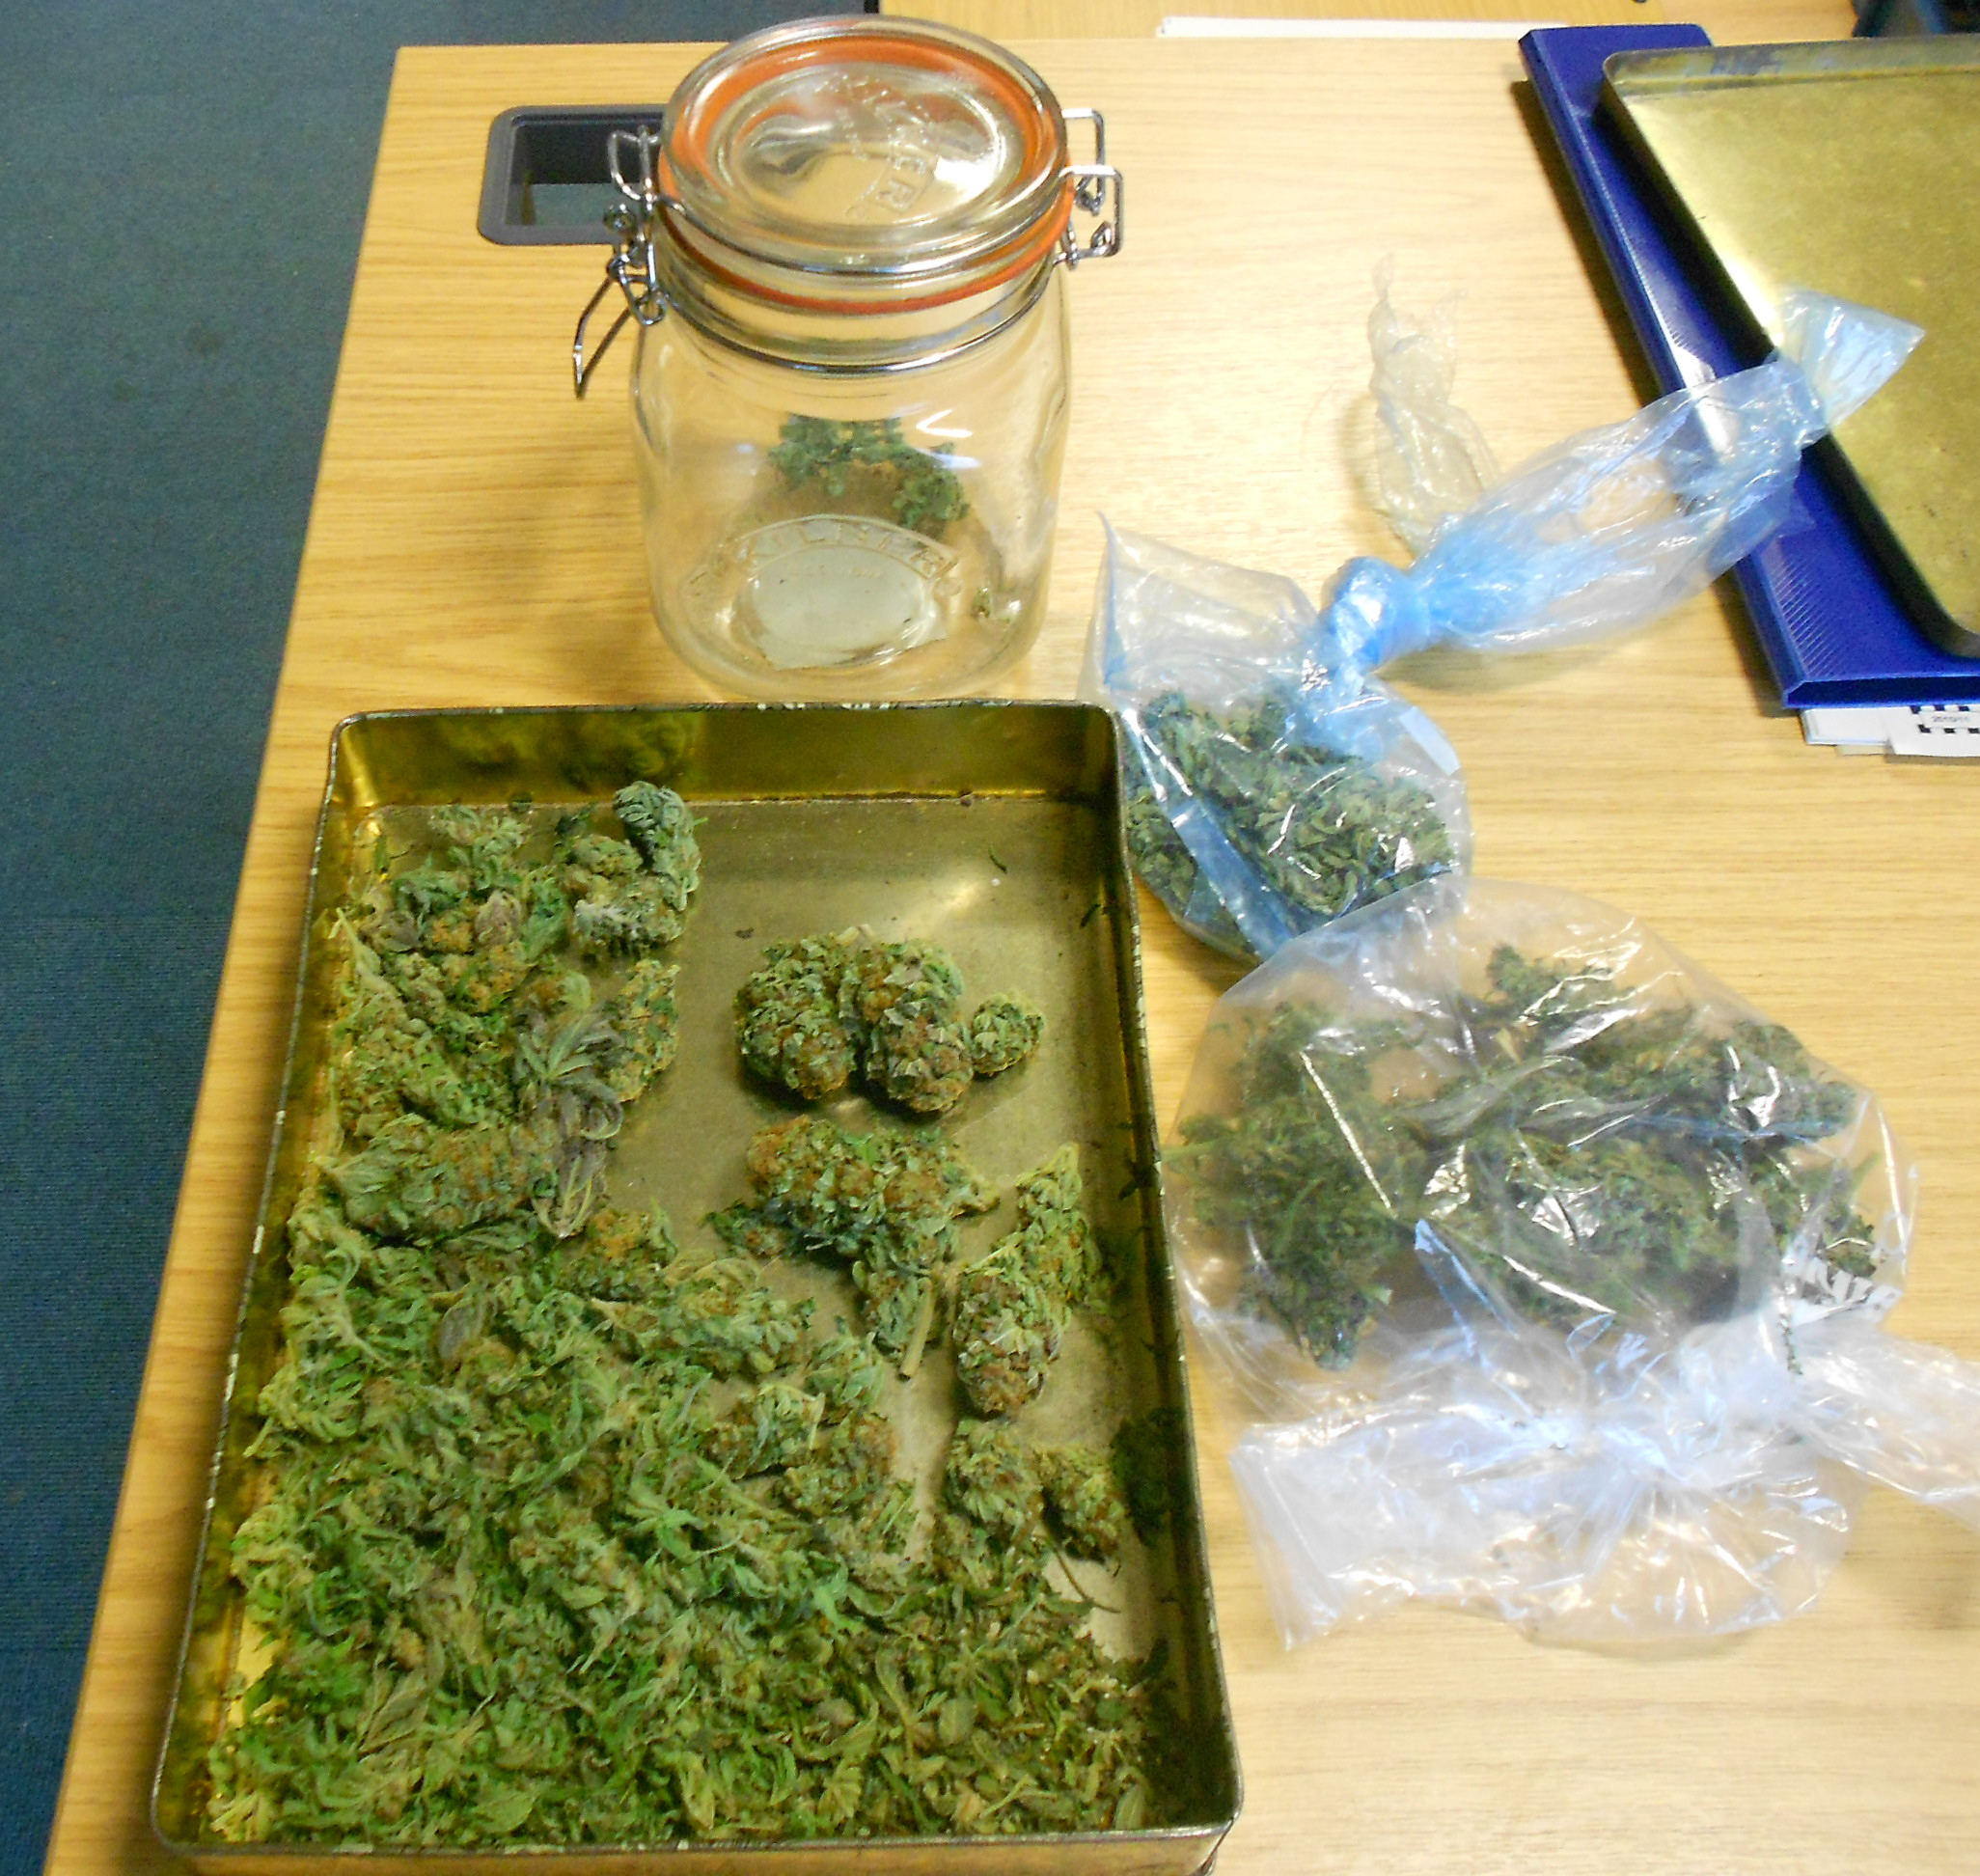 The suspected cannabis recovered by Bridgwate